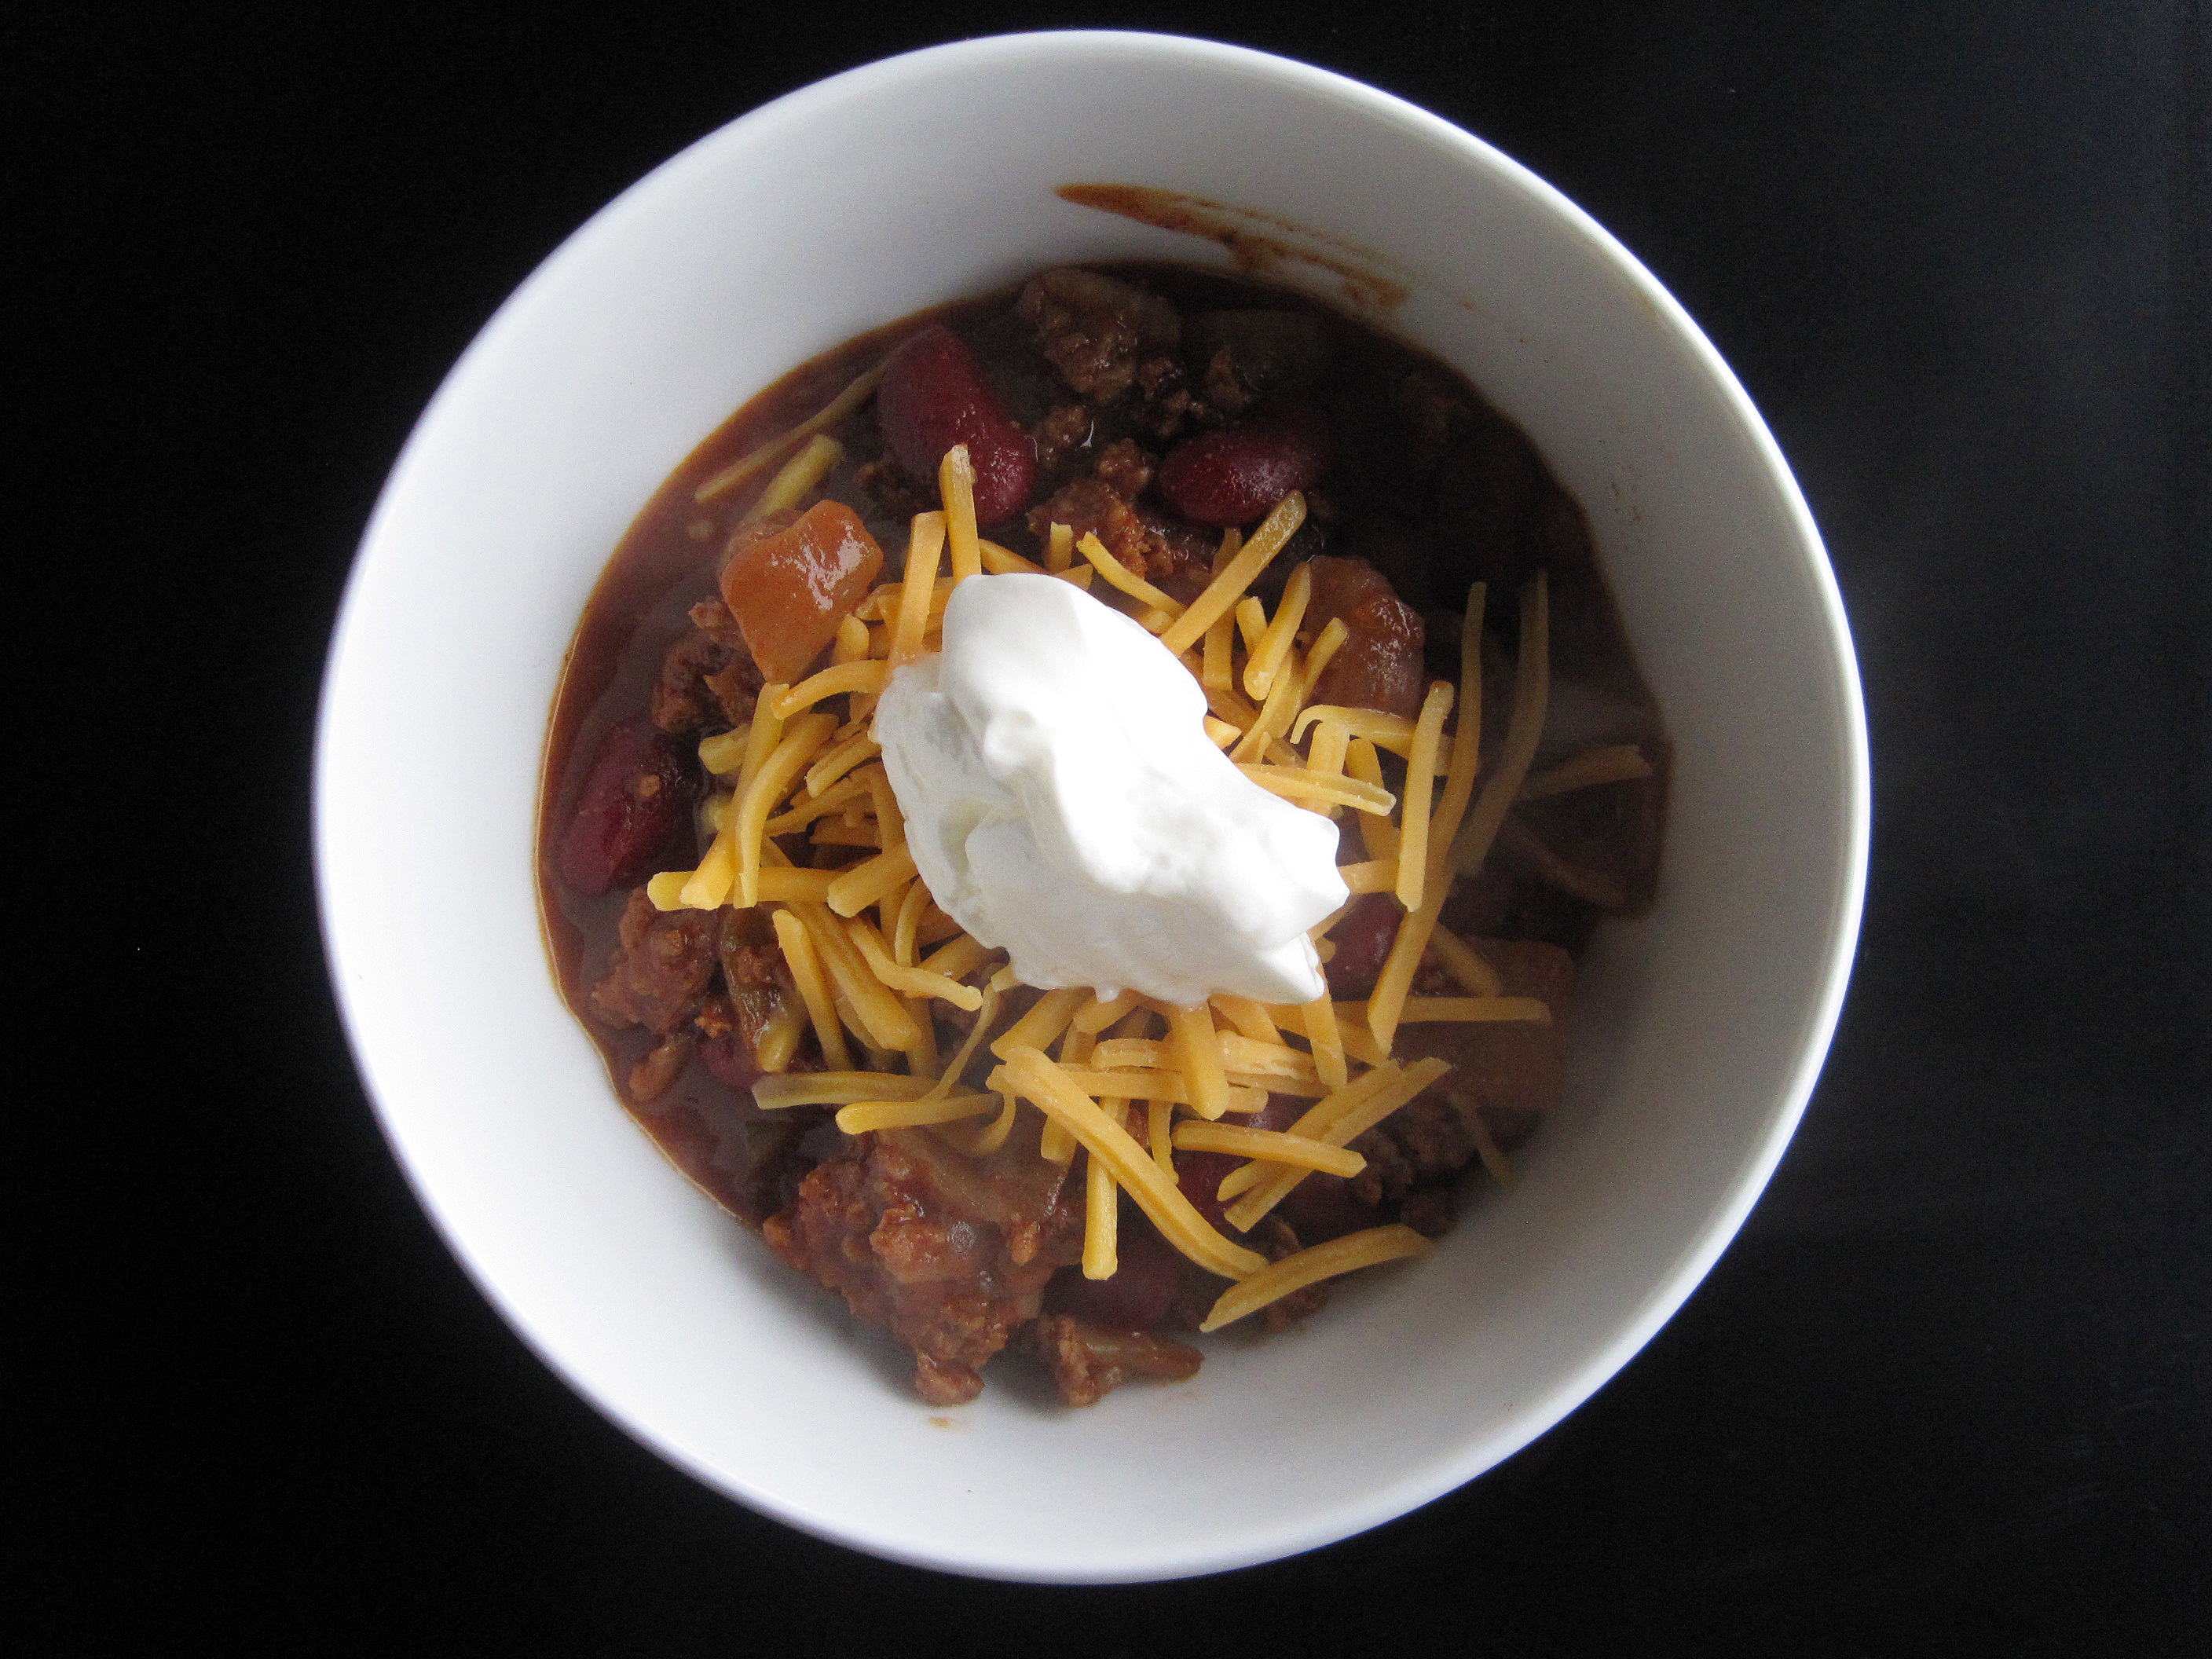 Varsity+chili+dog+recipe